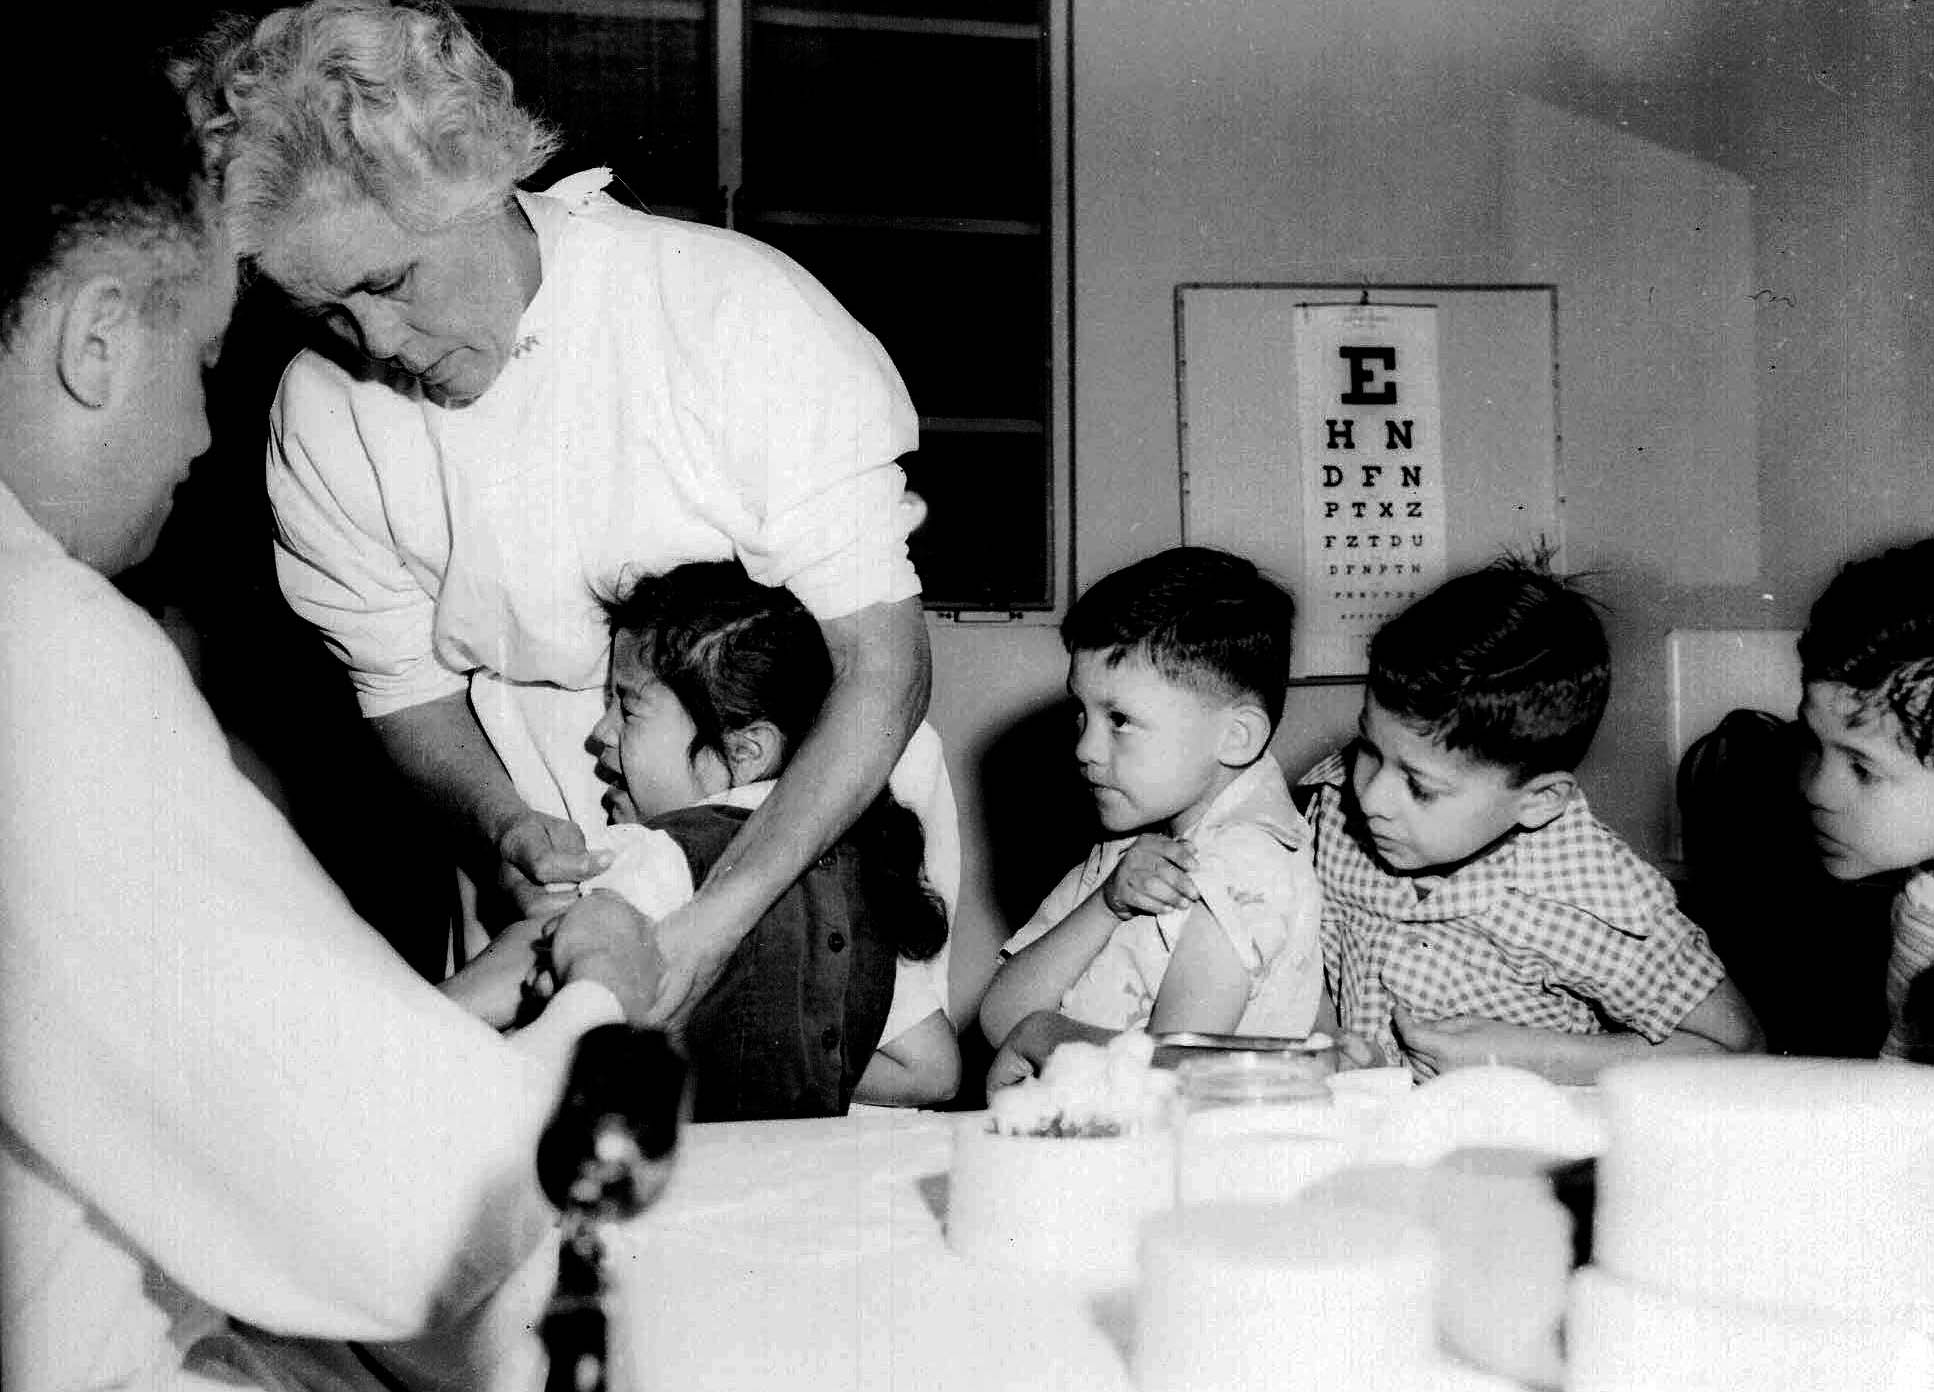 the salk polio vaccine a medical miracle turns 60   cbs news